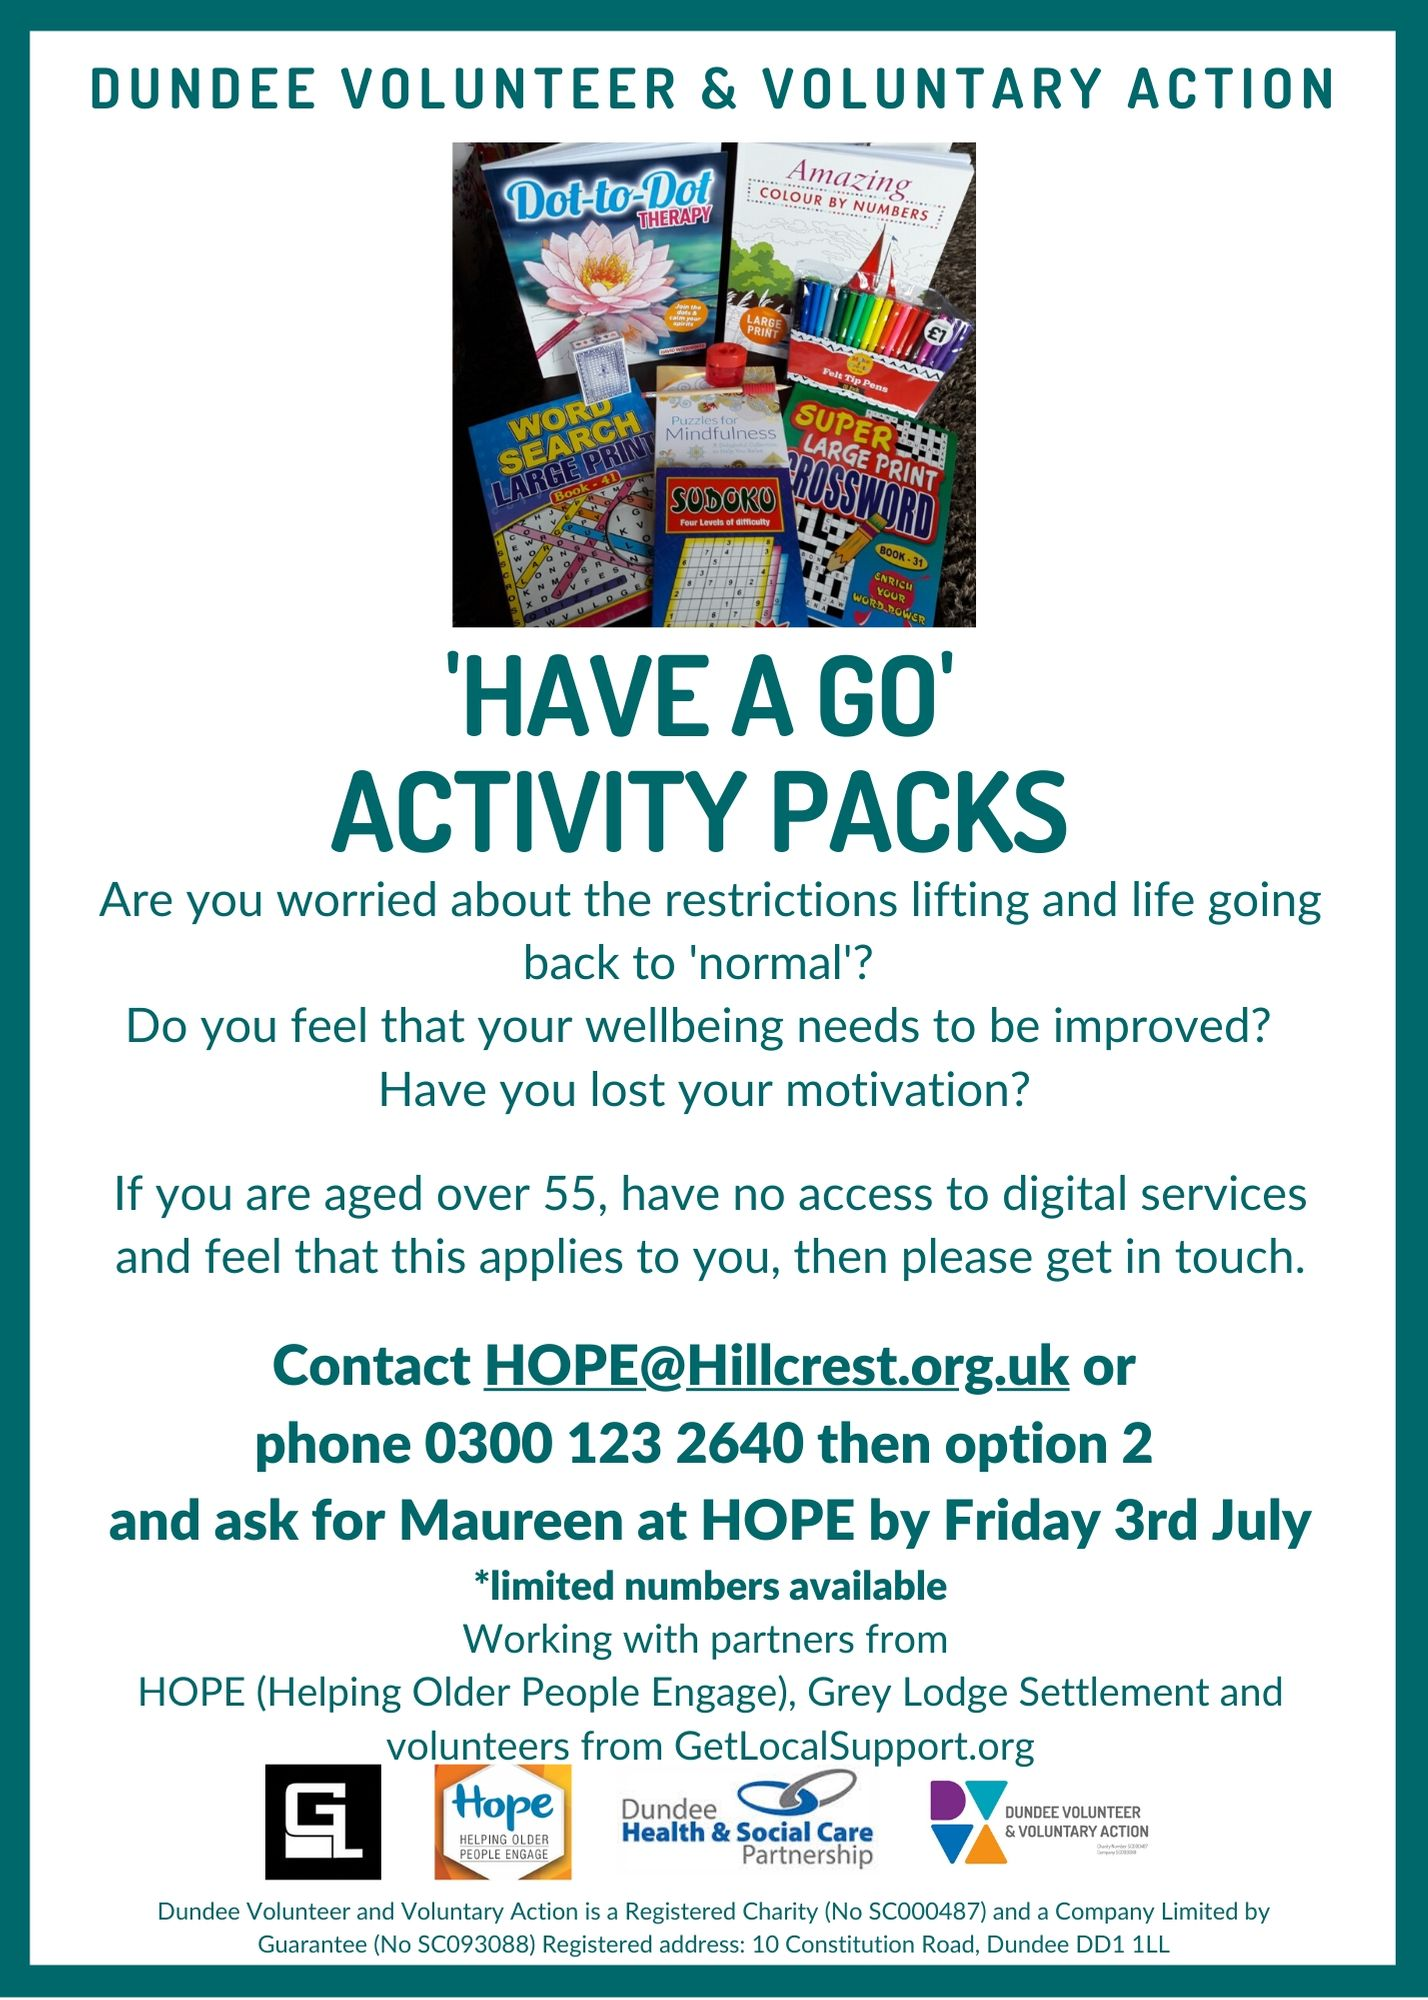 'Have a Go' Activity Packs. Contact at HOPE@hillcrest.org.uk or call 0300 1232640